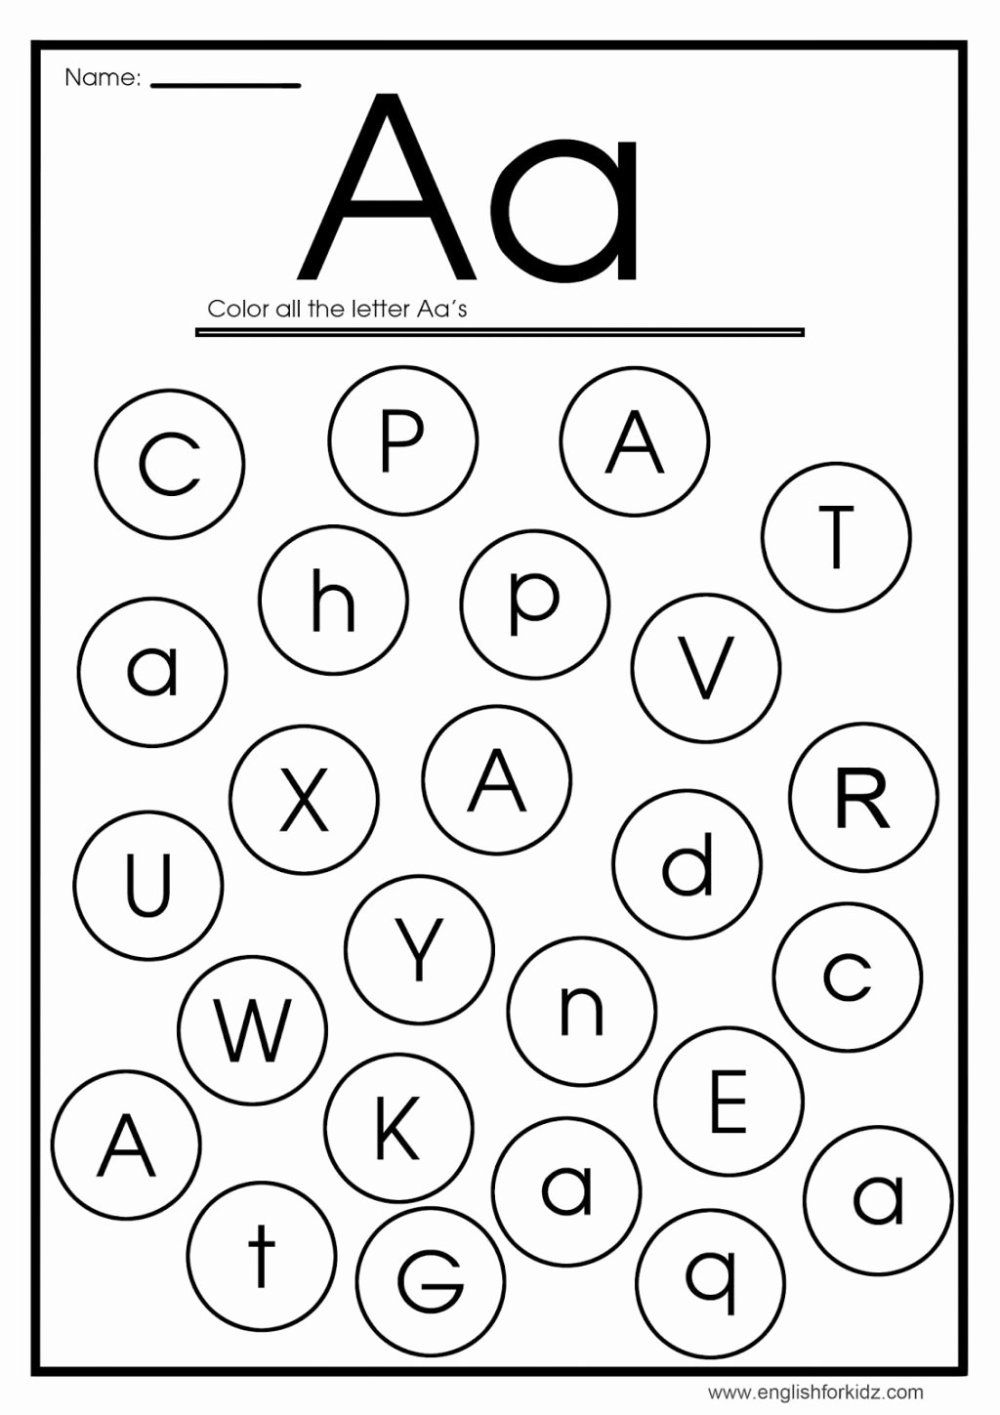 medium resolution of Worksheets for Preschoolers On Letters Awesome Worksheet Preschool Letter Worksheets  Worksheet Ideas Pdf – Printable Worksheets for Kids